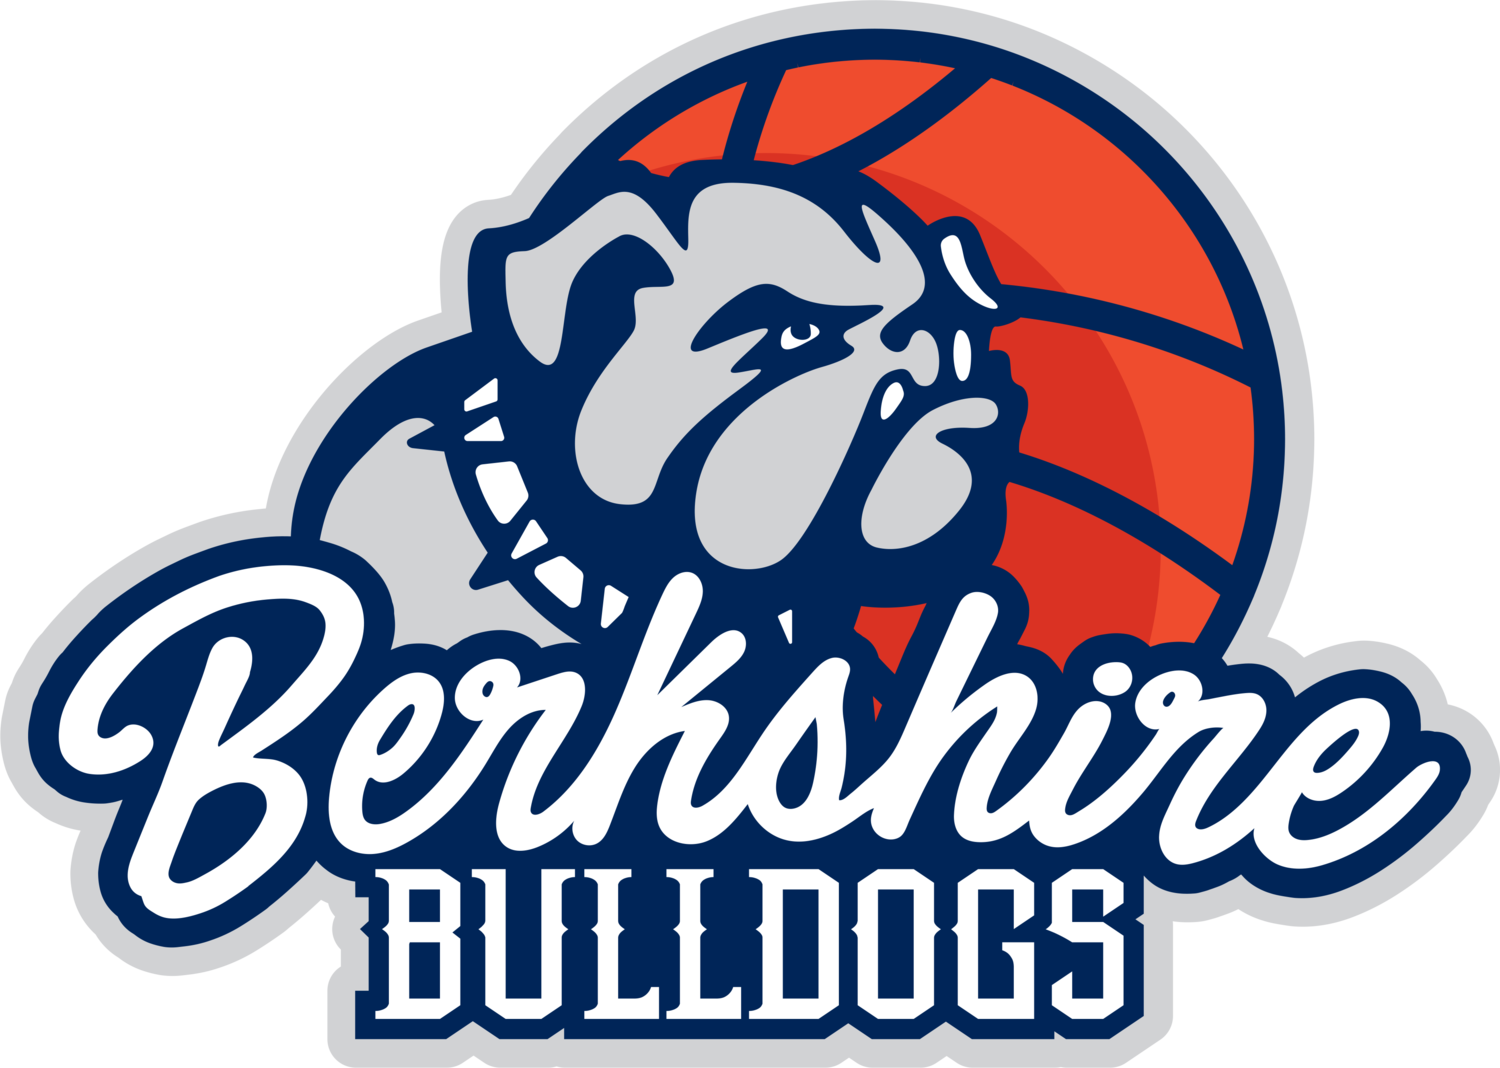 BERKSHIRE BULLDOGS